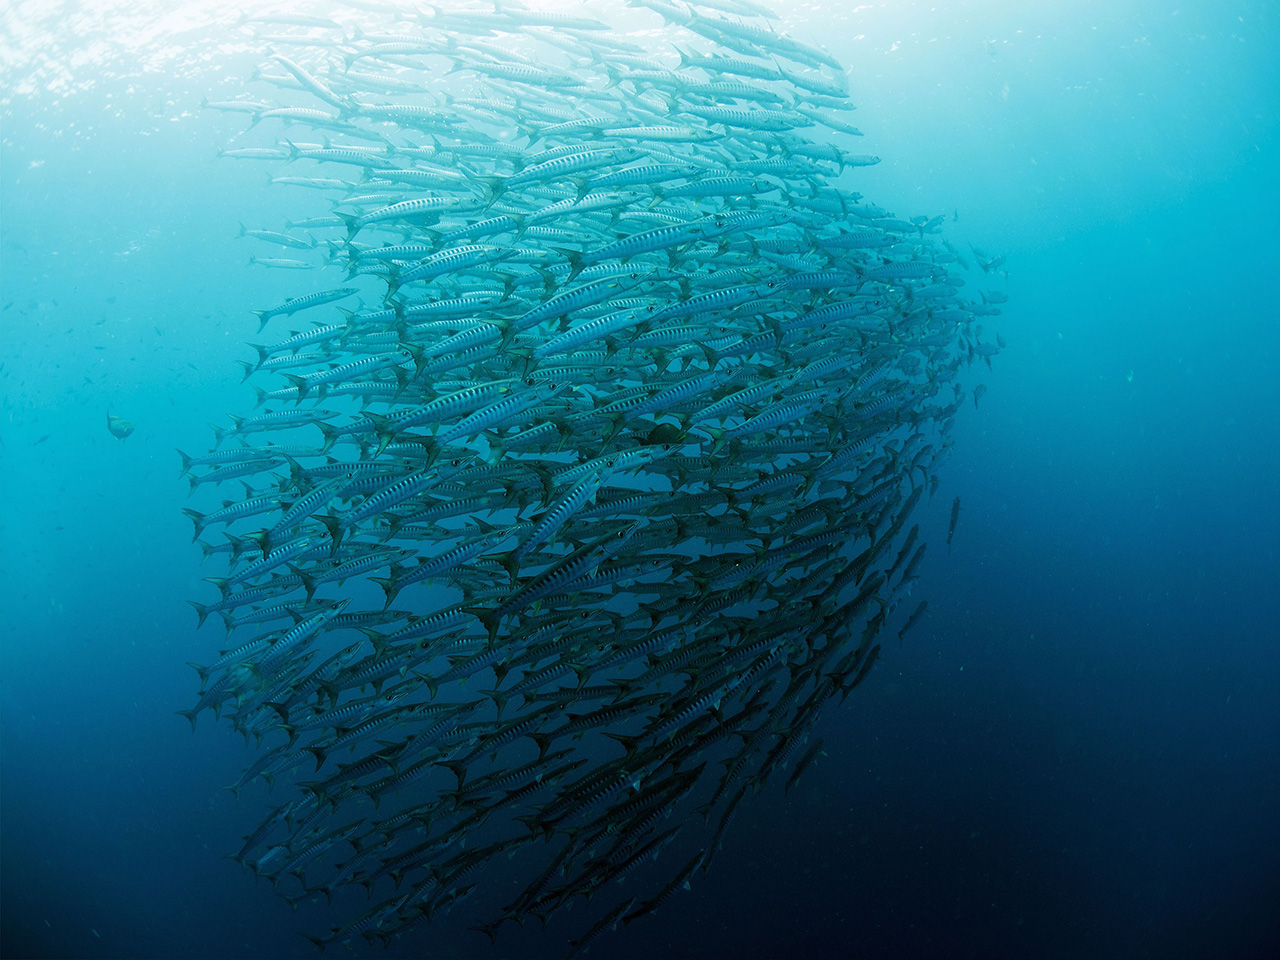 A unified school of Barracuda.